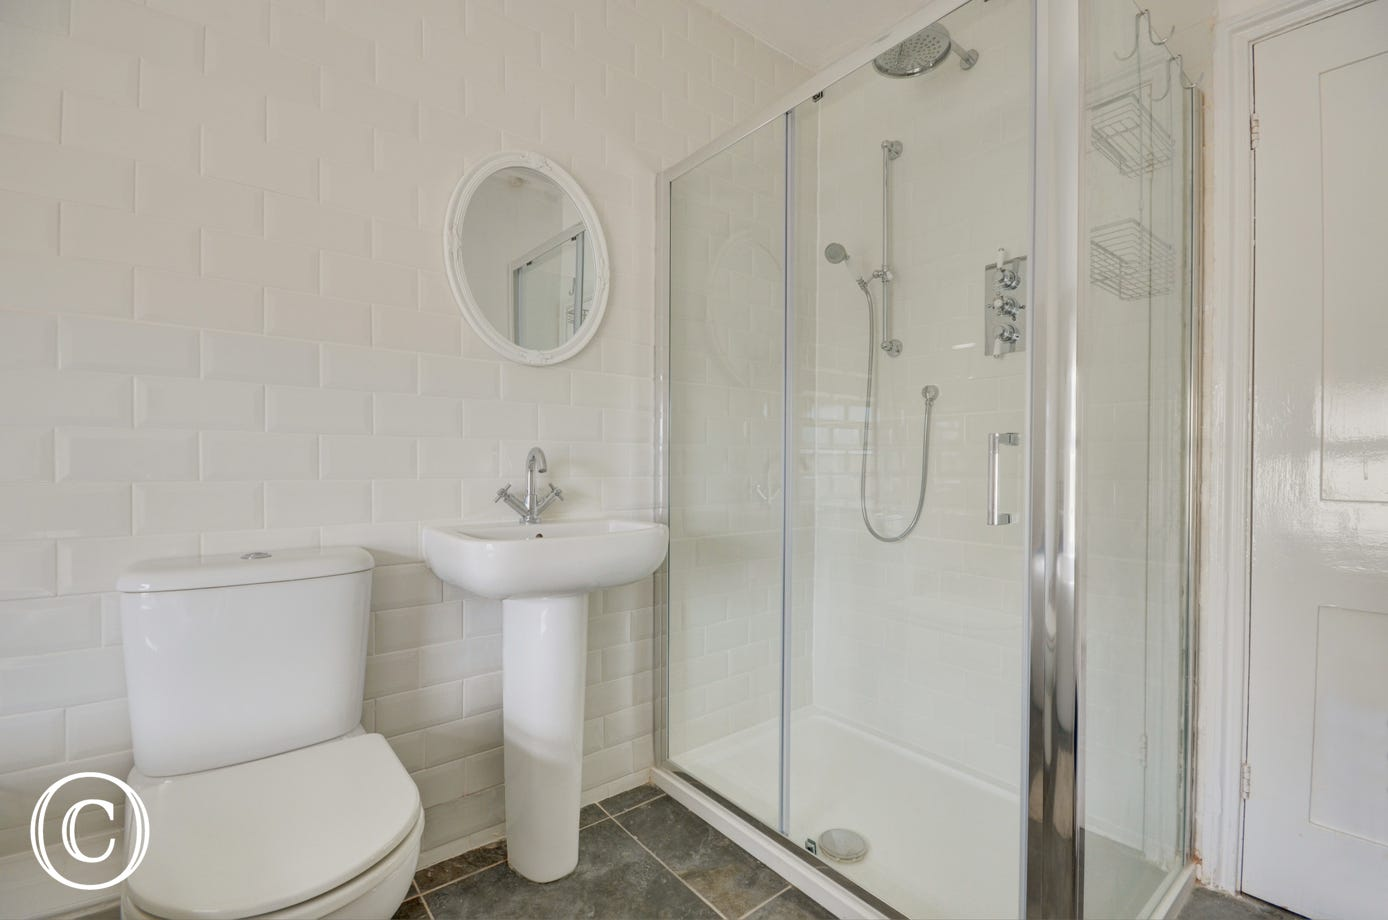 Rainfall shower cubicle, washbasin and wc